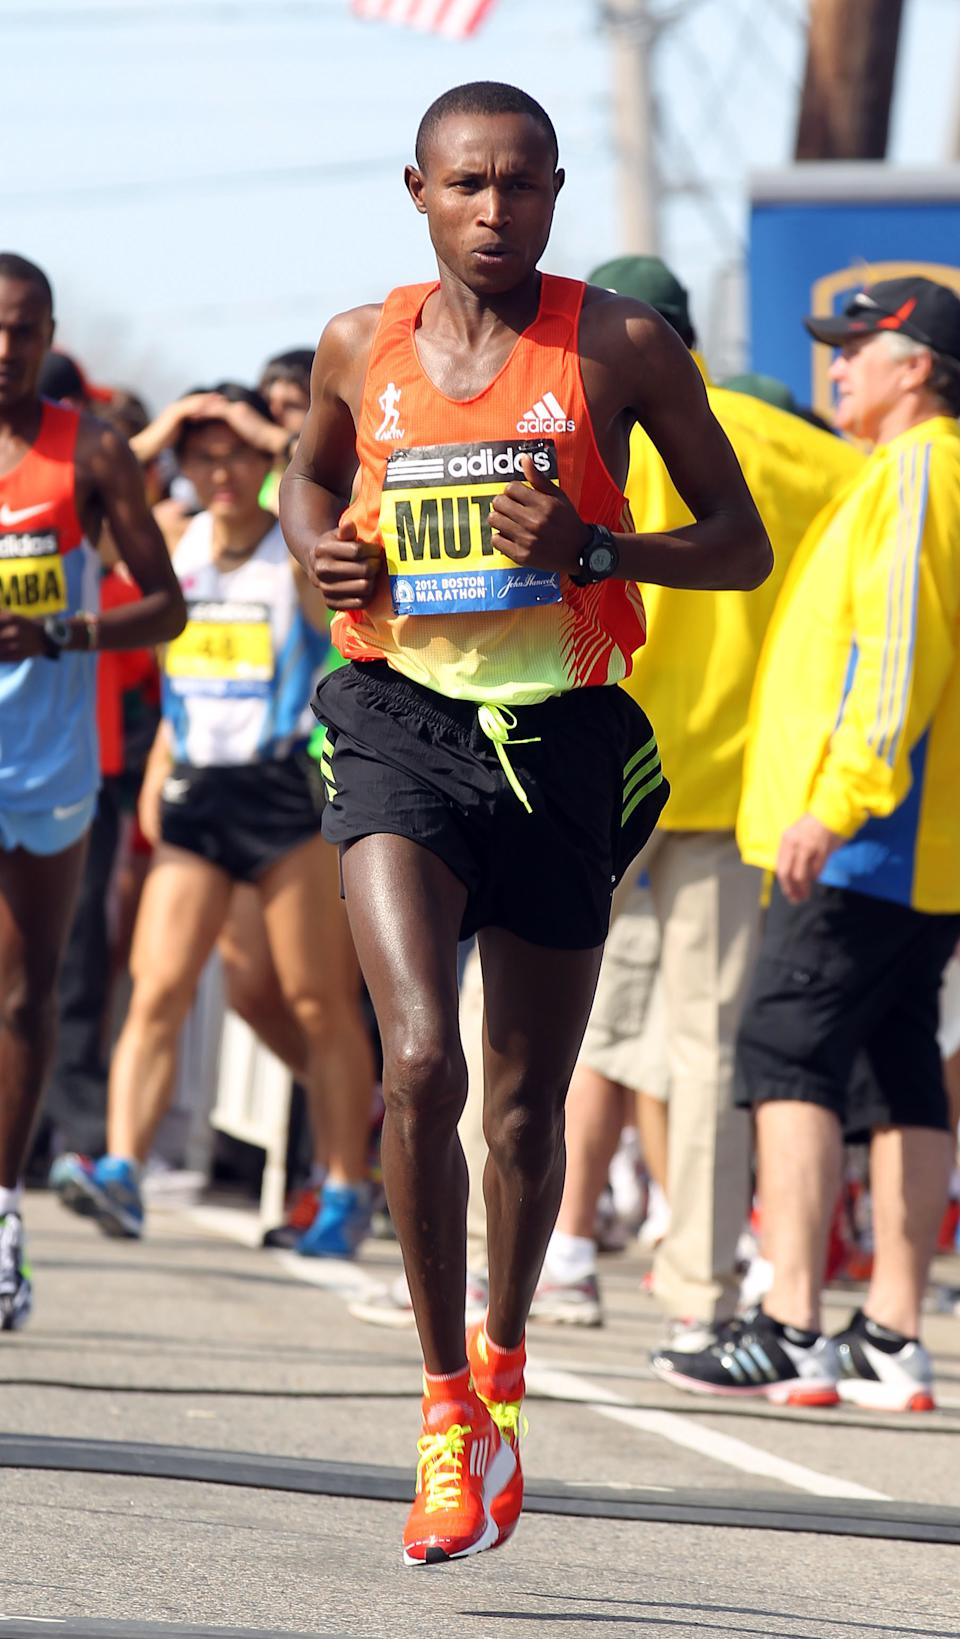 Geoffrey Mutai, of Kenya, warms up prior to the start of the 116th running of the Boston Marathon, in Hopkinton, Mass., Monday, April 16, 2012. (AP Photo/Stew Milne)